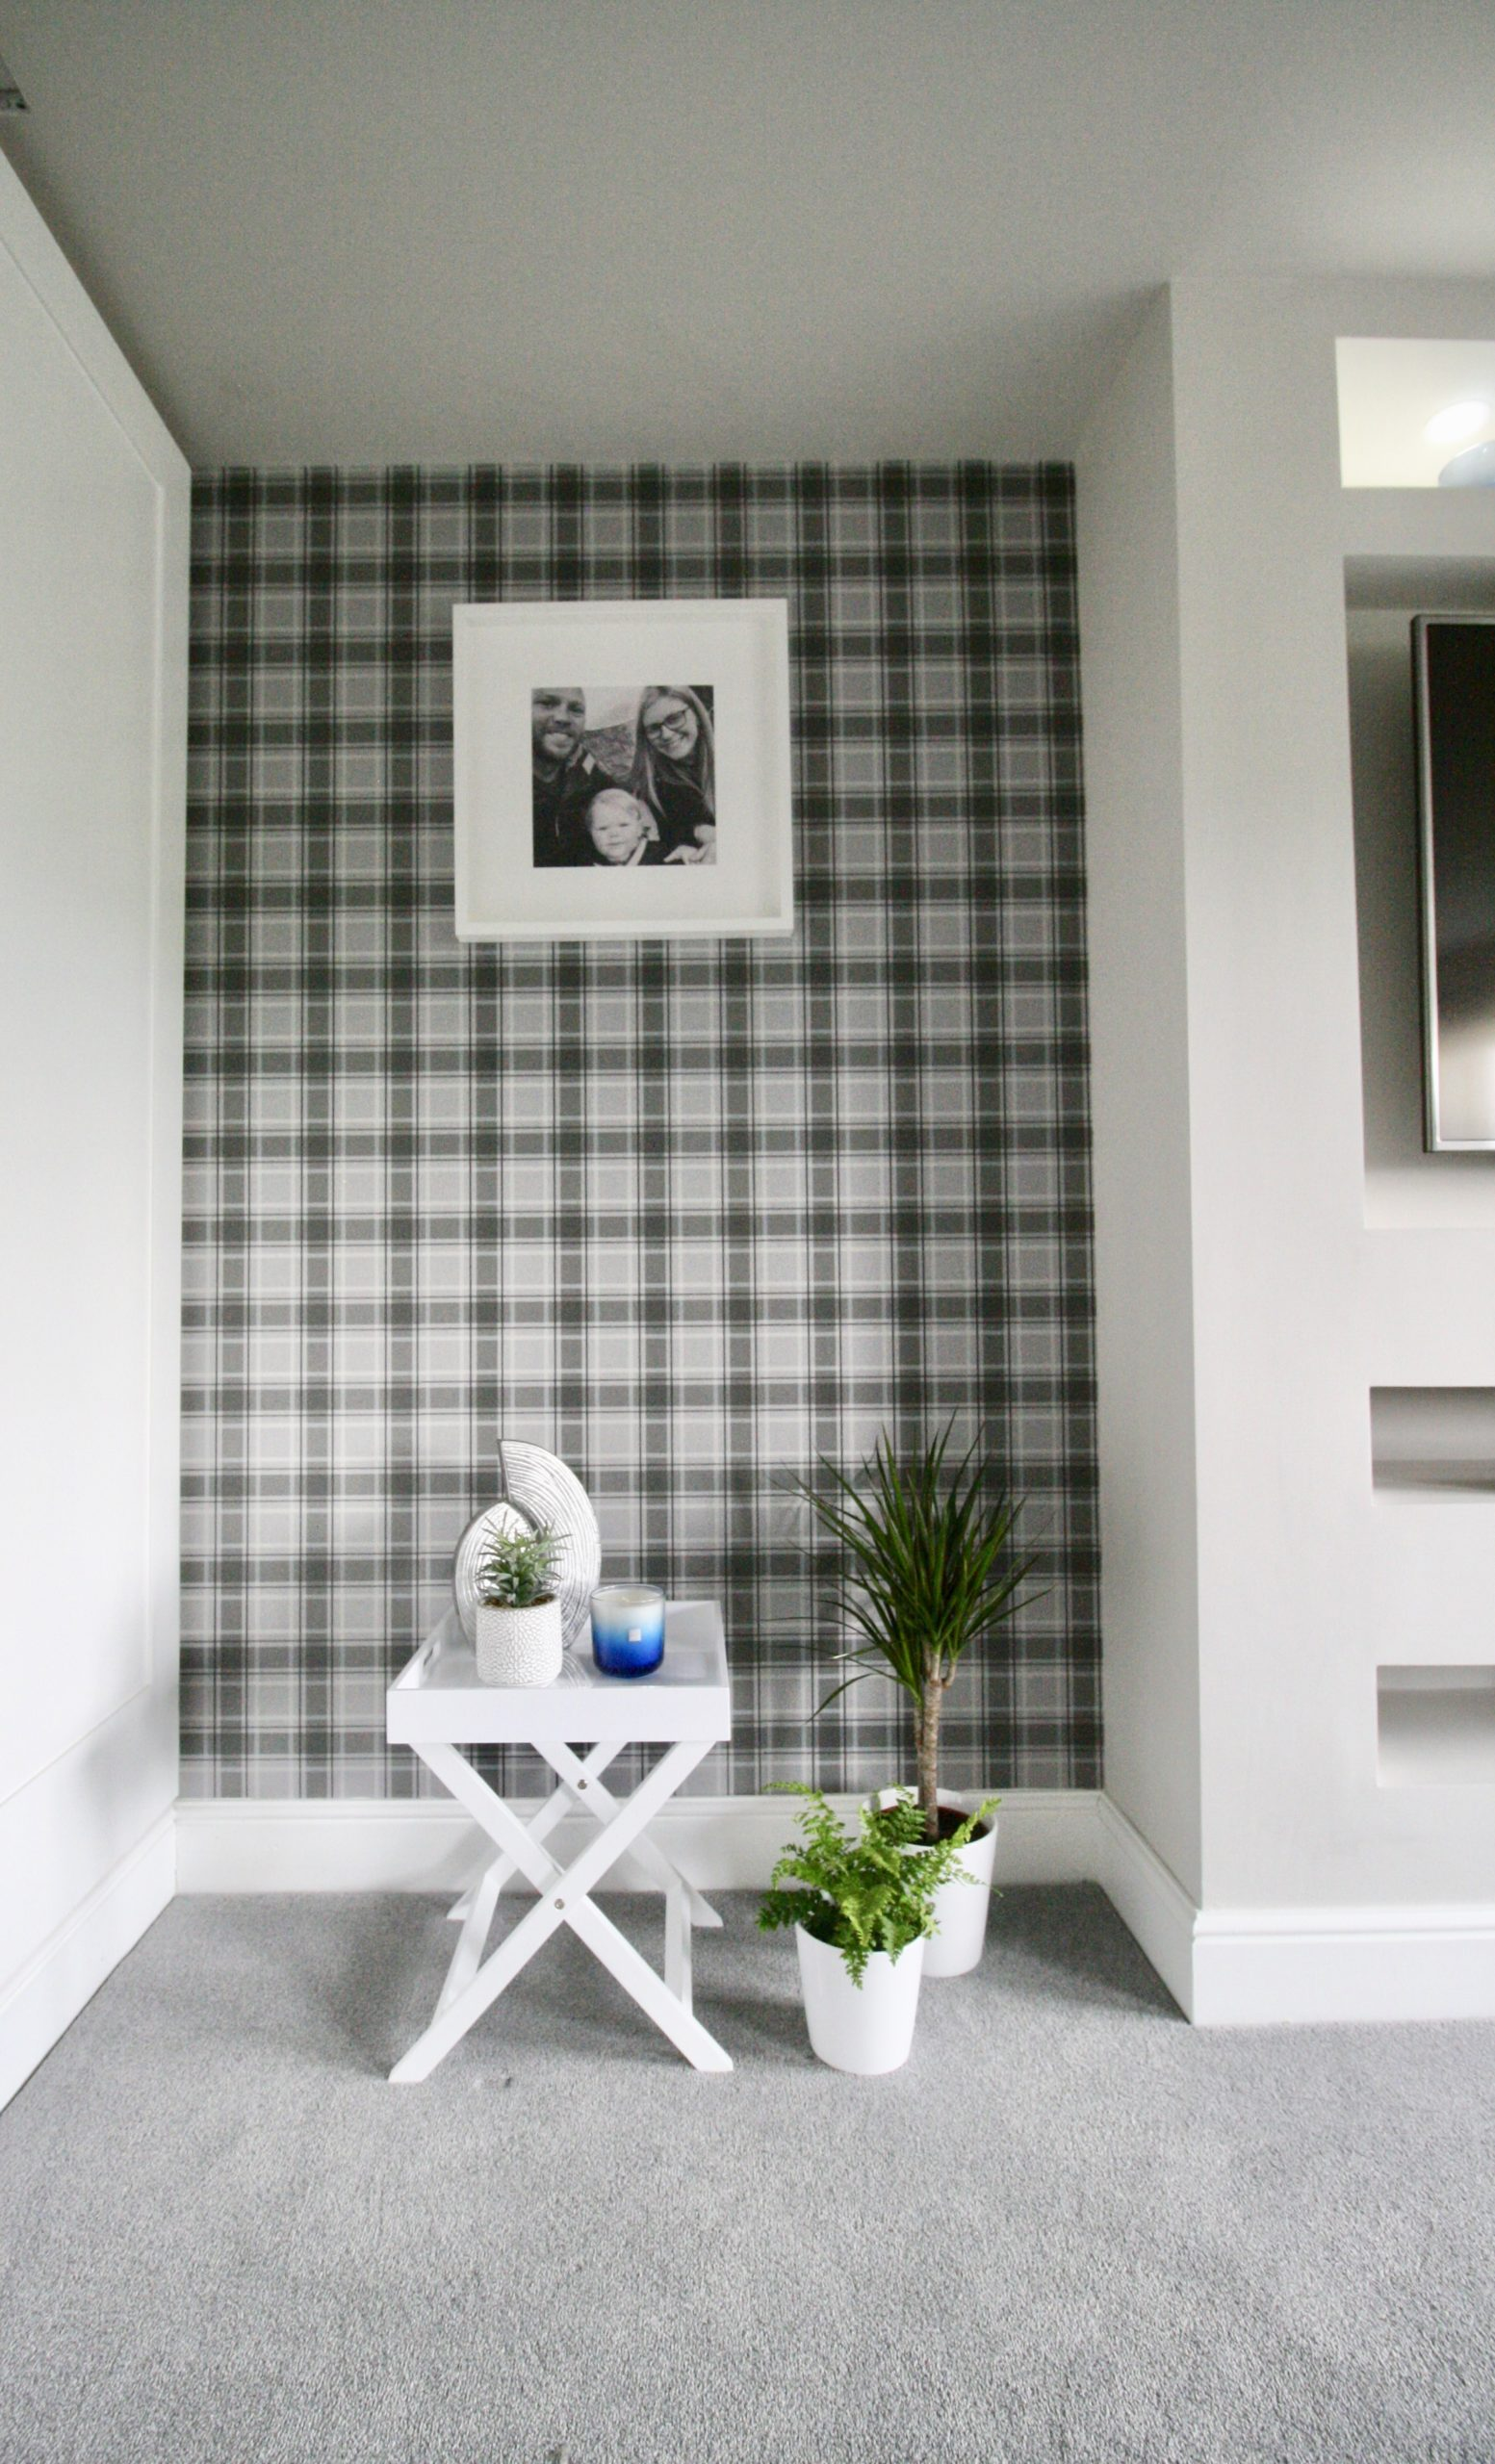 Grey tartan wallpaper in TV room with white tray table and white framed artwork